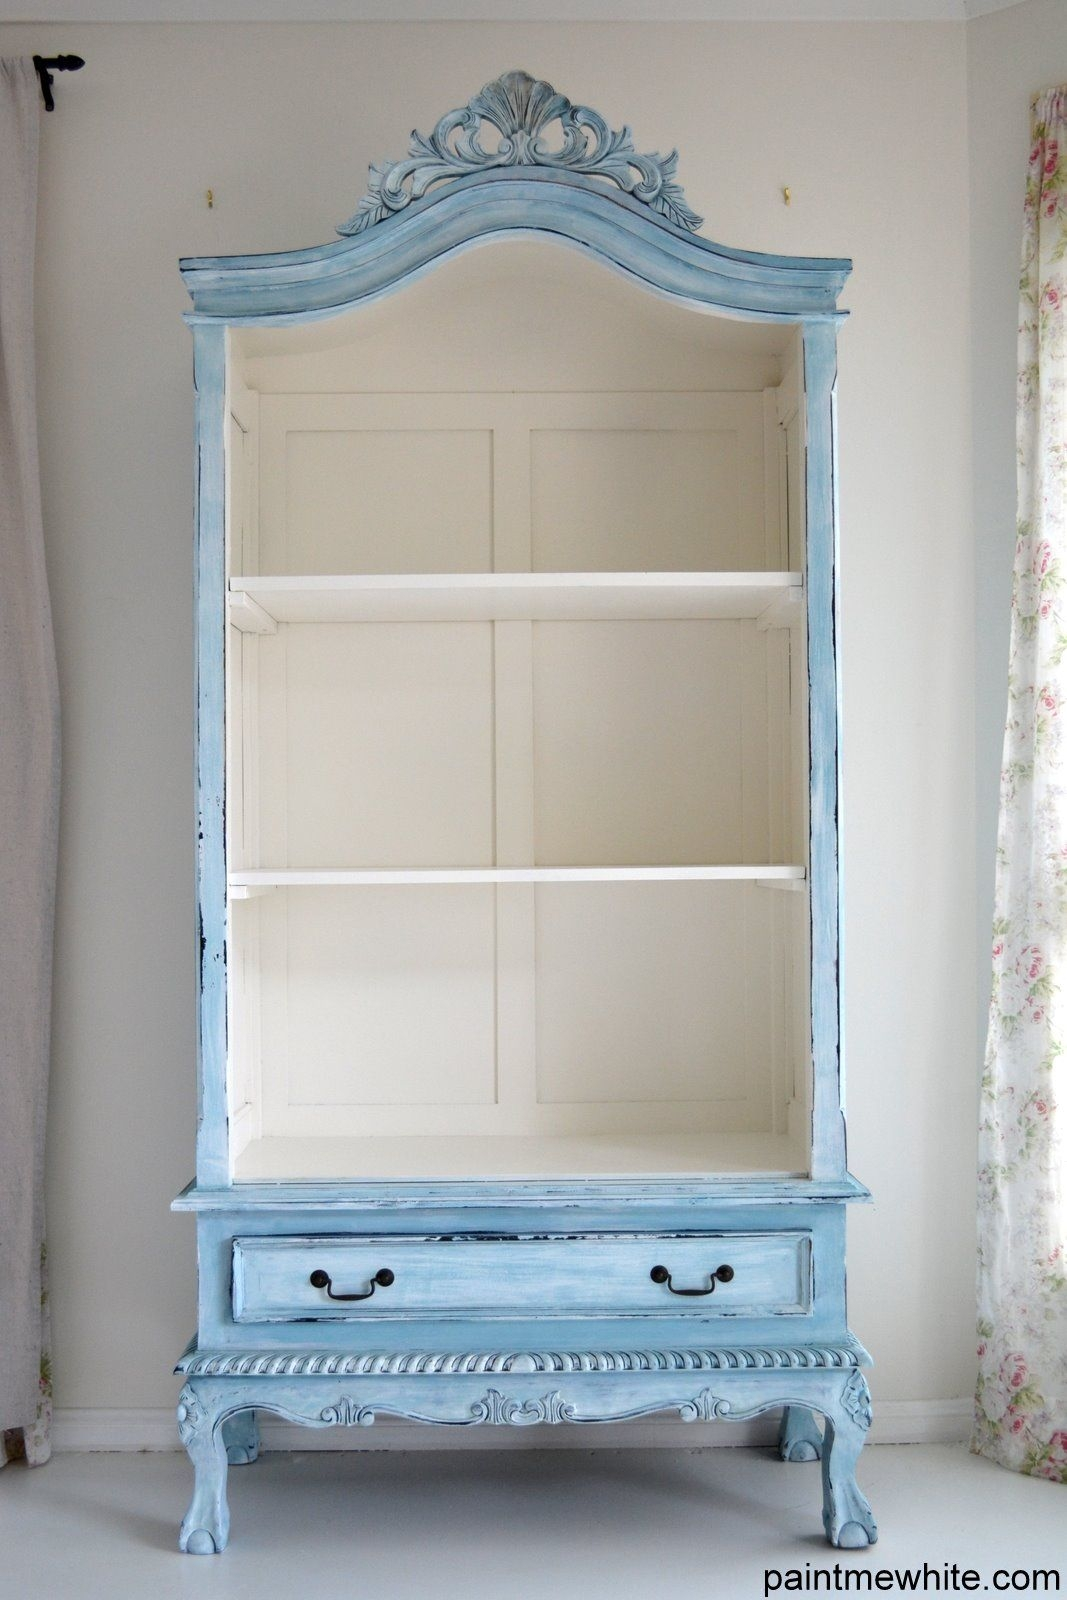 Charmant Storage Armoire With Shelves